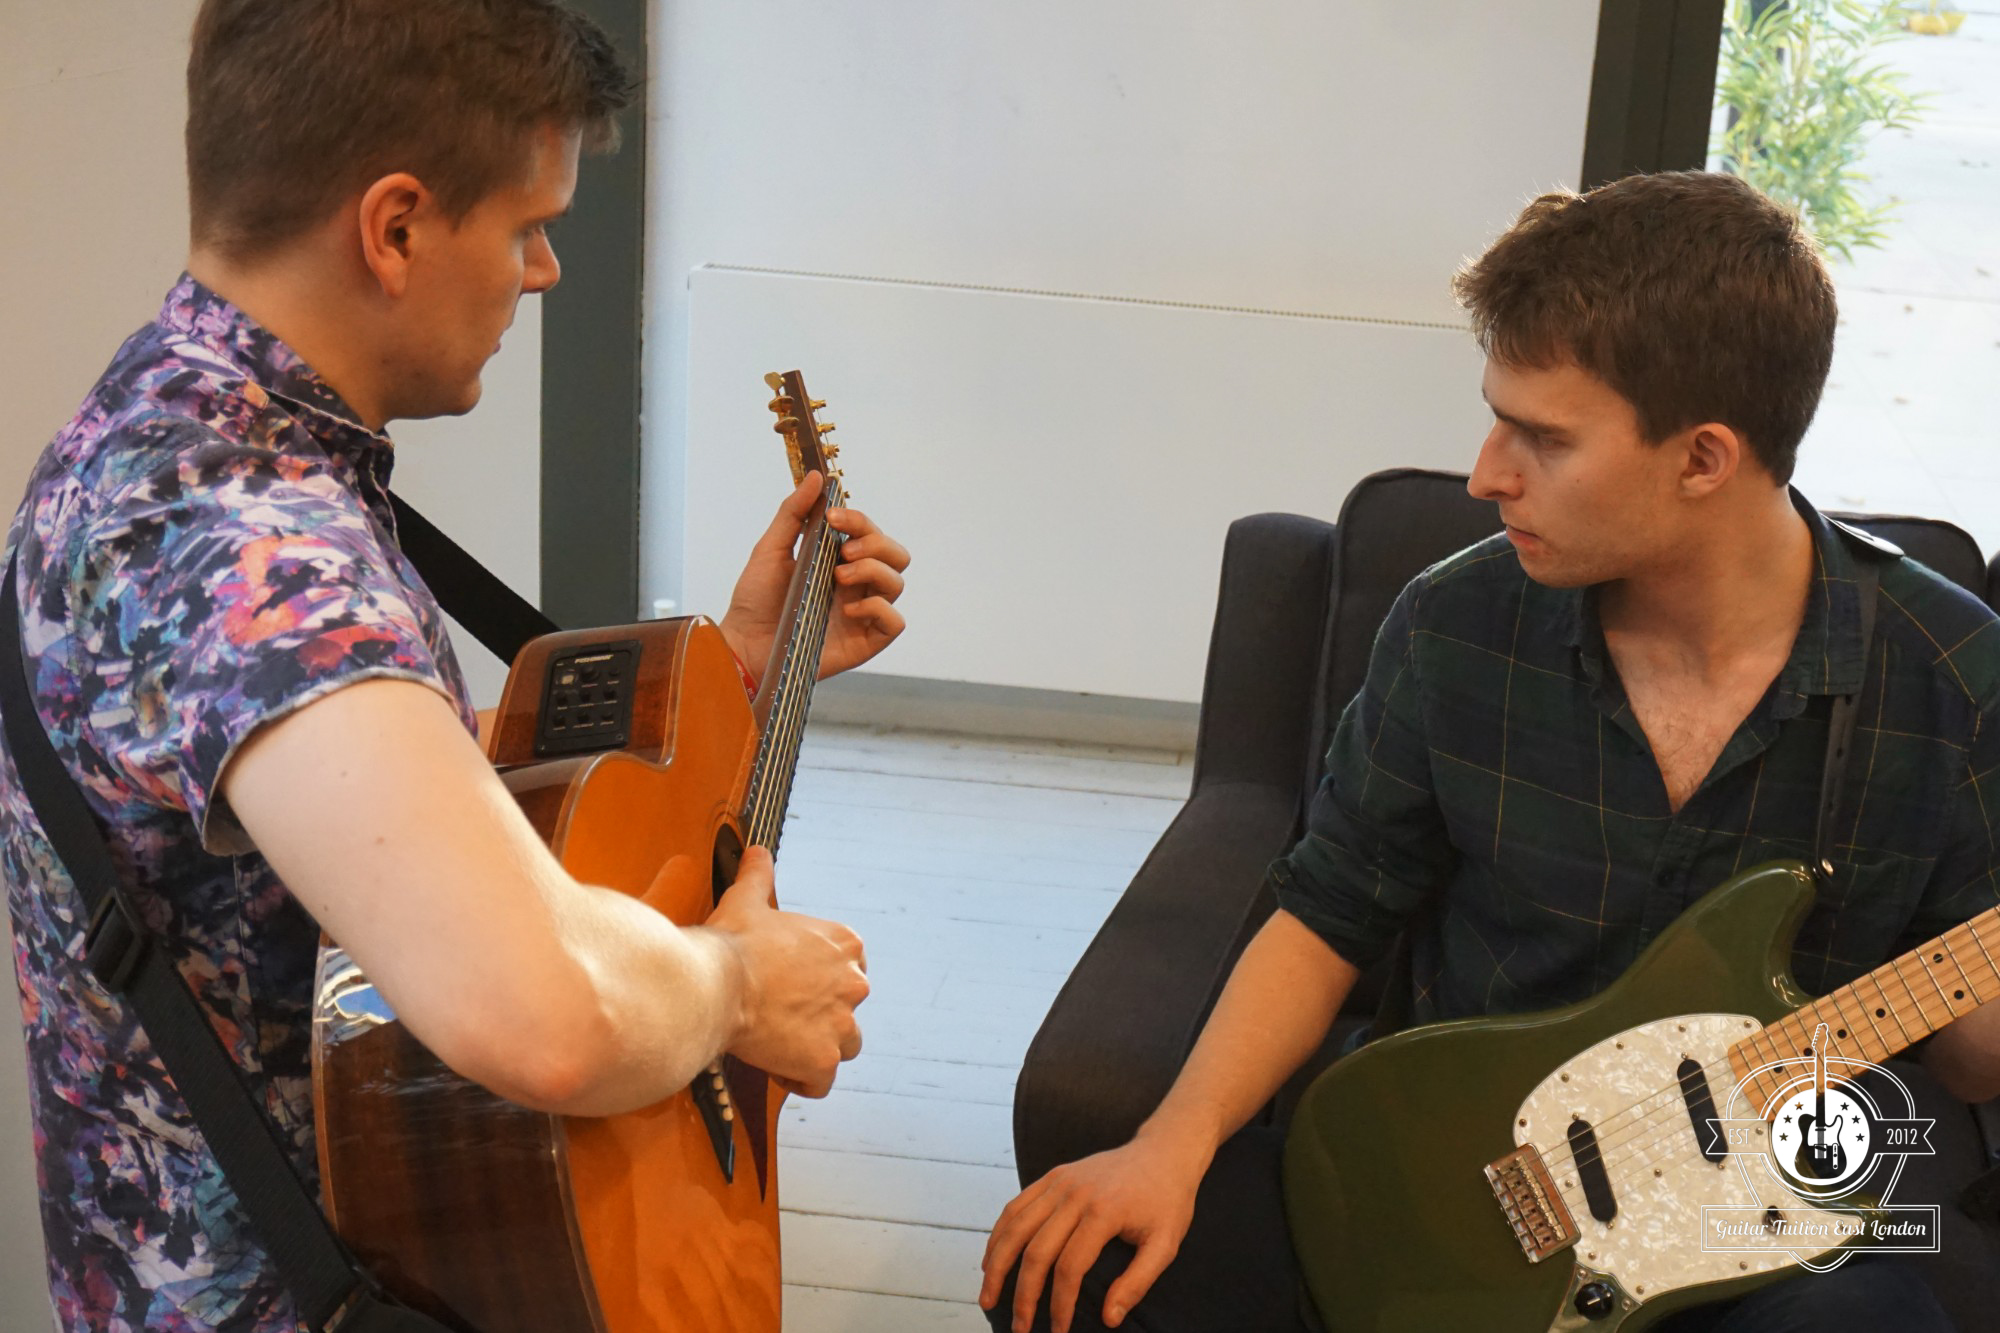 One of our teachers, Darryl with Rob, our student working on fingerpicking.